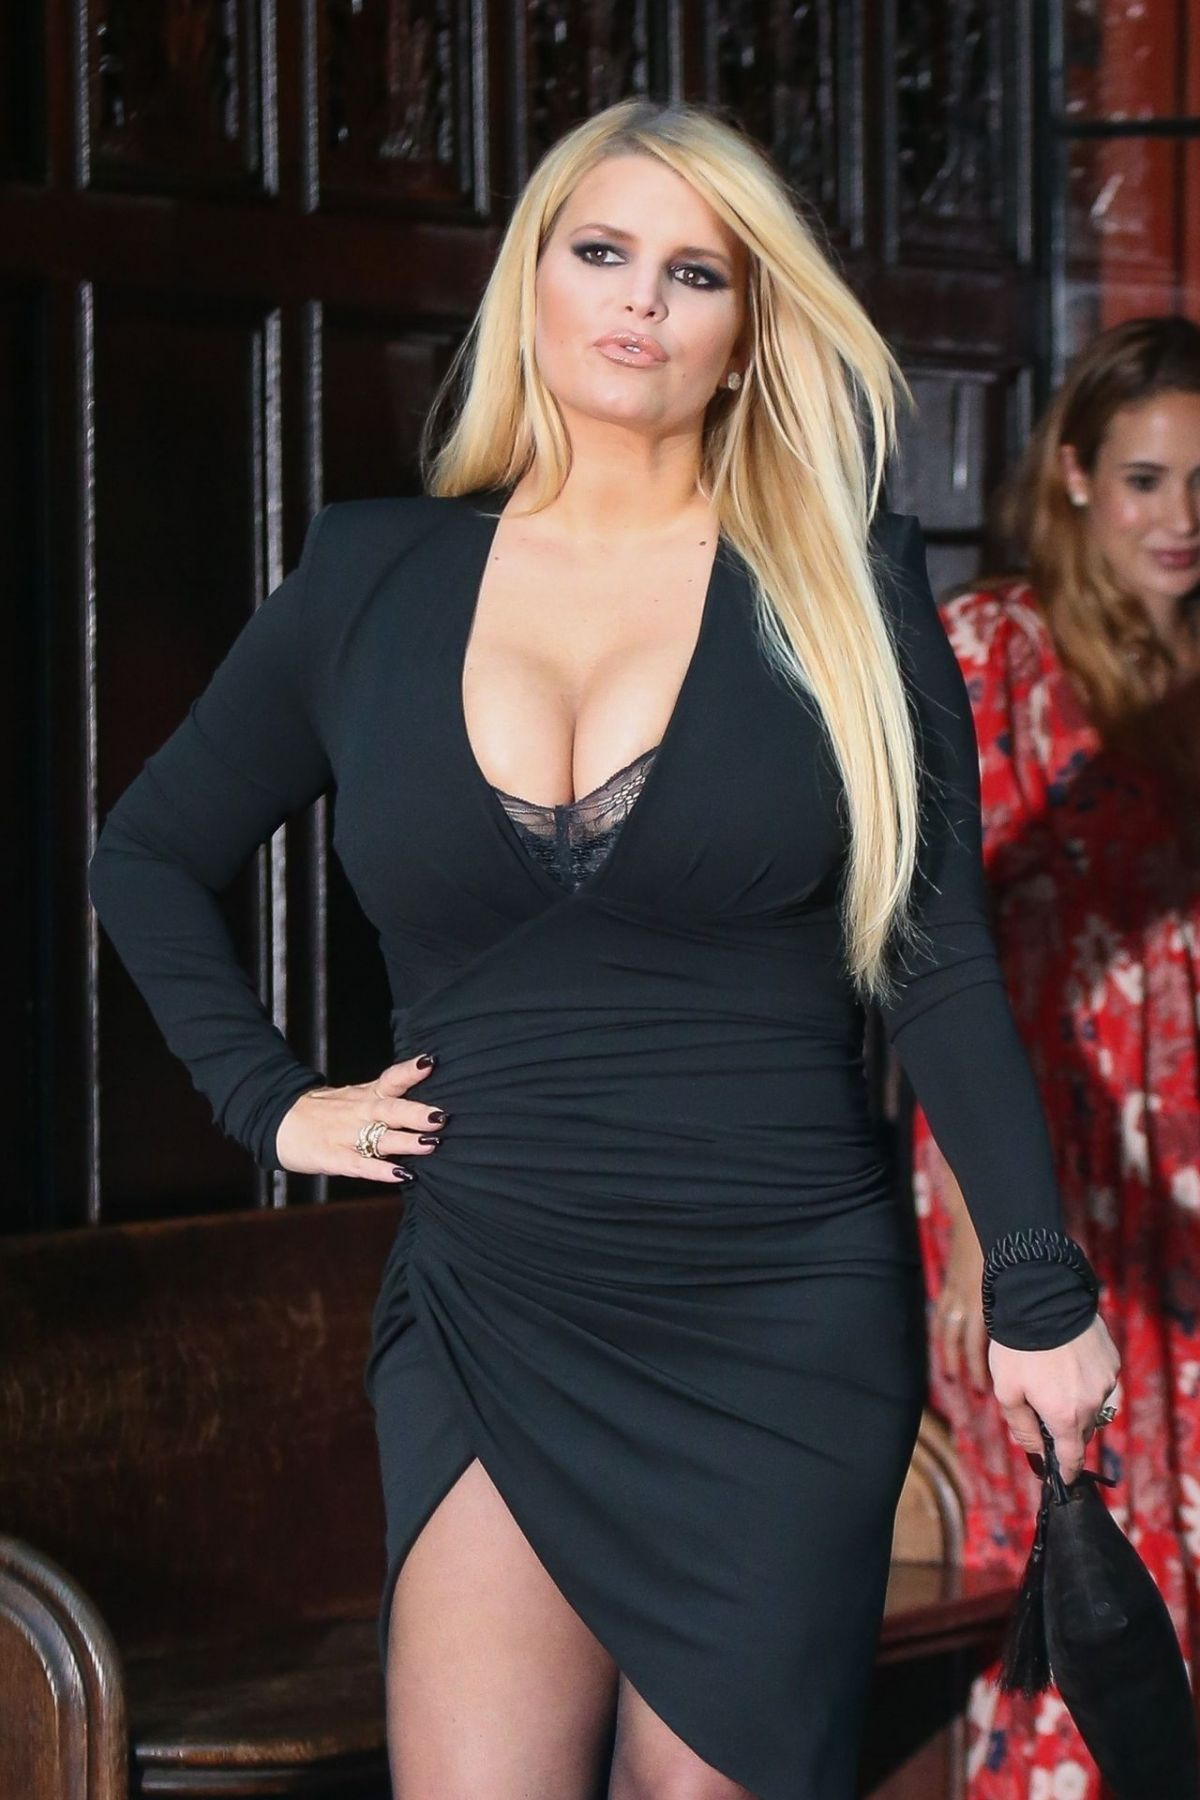 jessica-simpson-out-and-about-in-new-york-09-25-2019-24.jpg